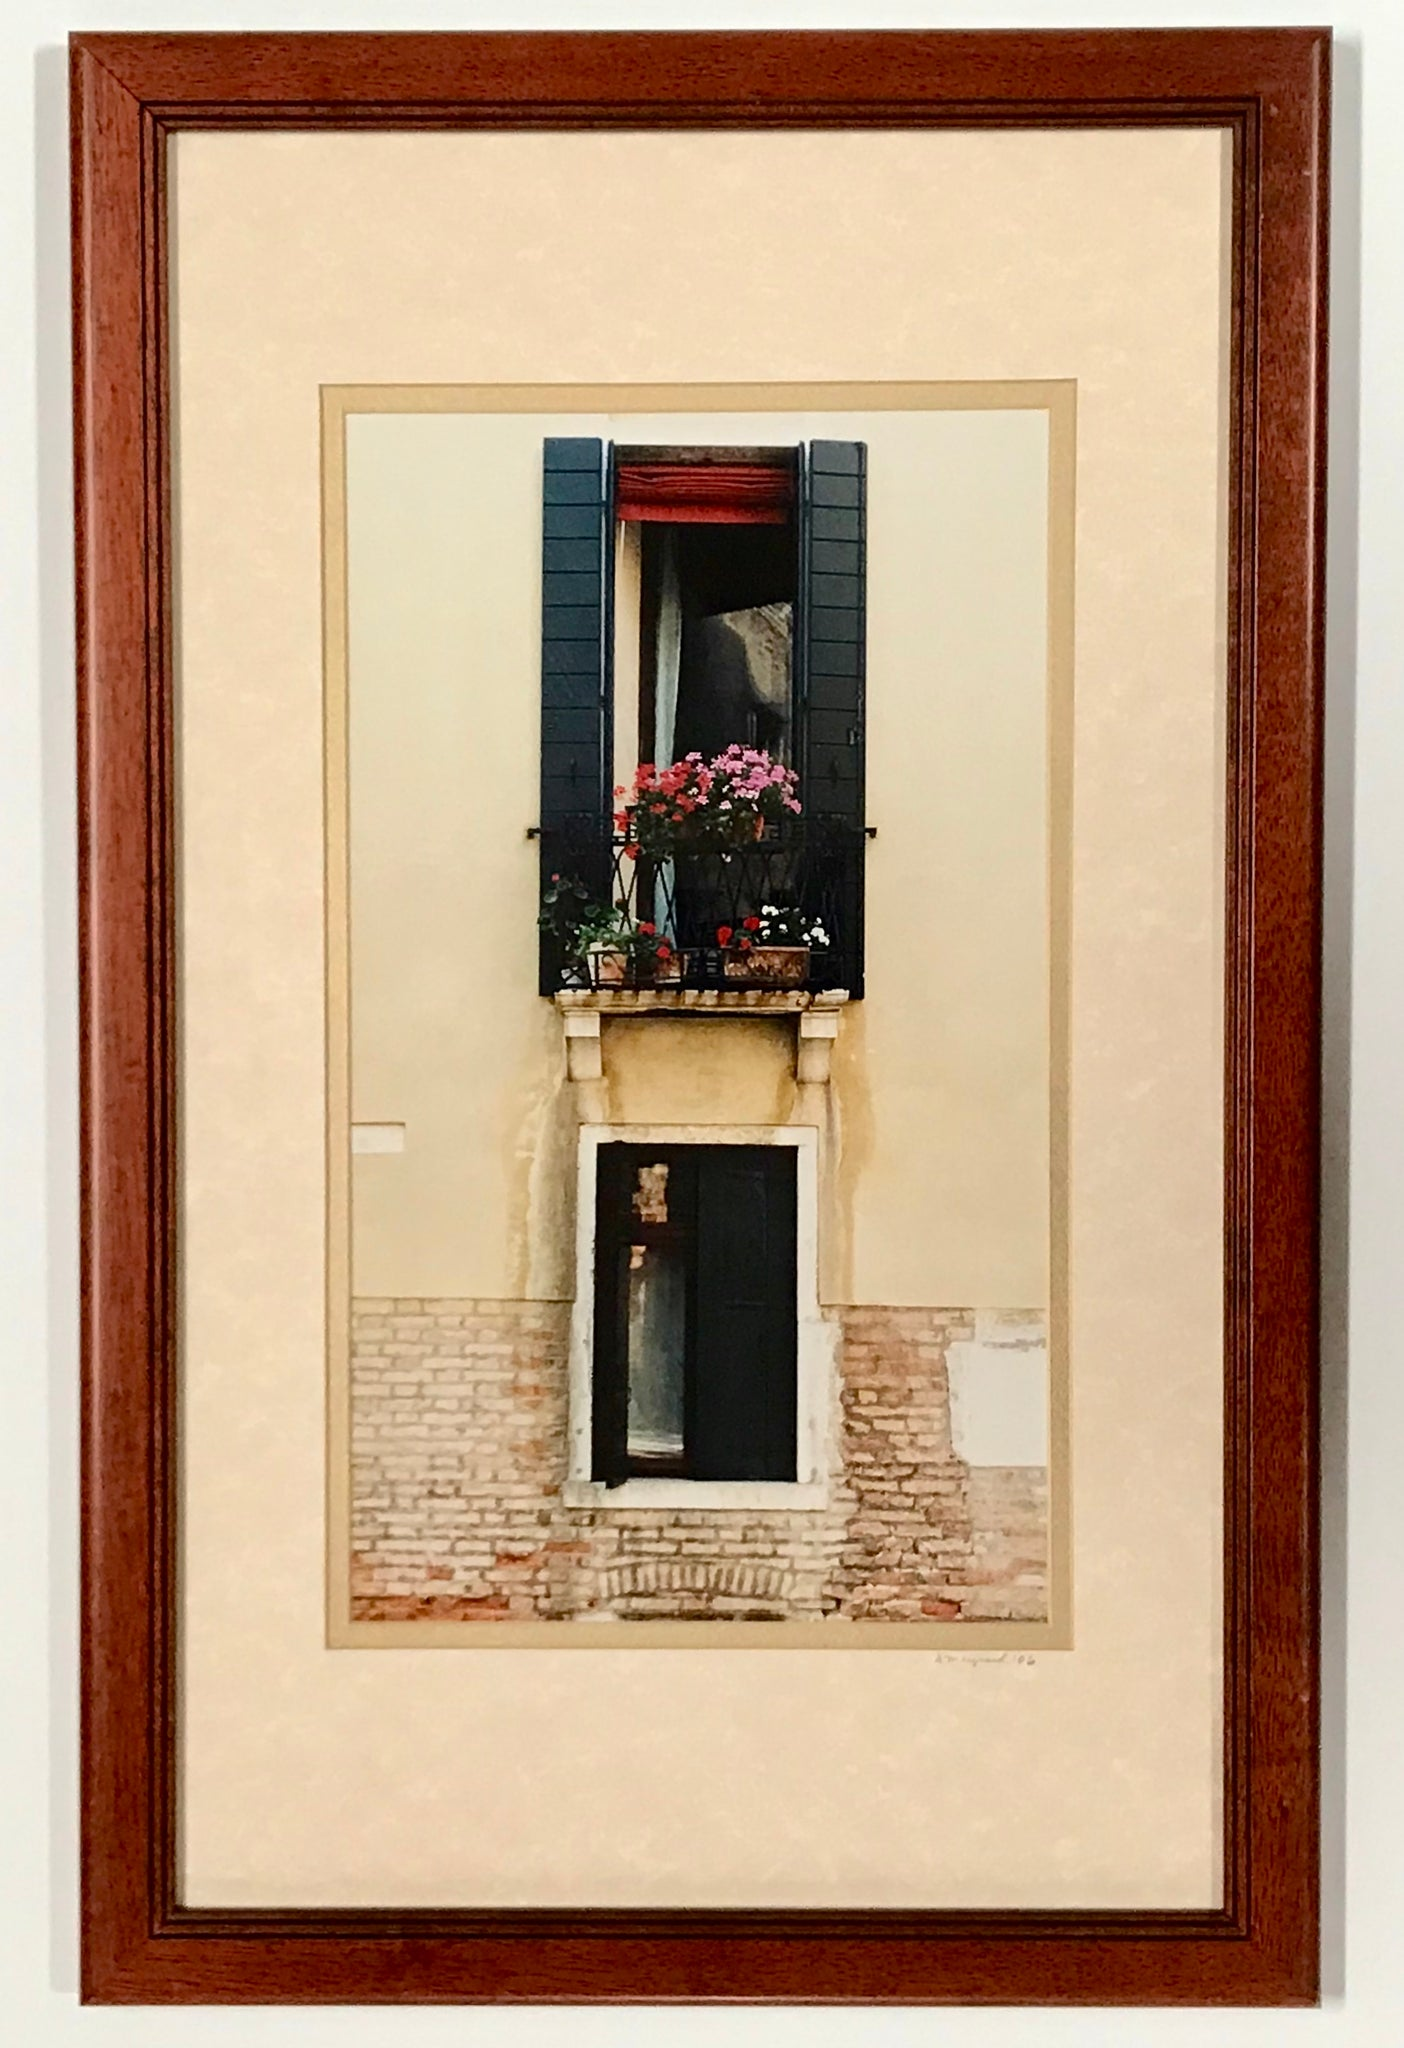 """Venetian Balcony"" Photo Signed by David Maynard encased in a Cherry Scoop Frame - Regalo Di Lusso"